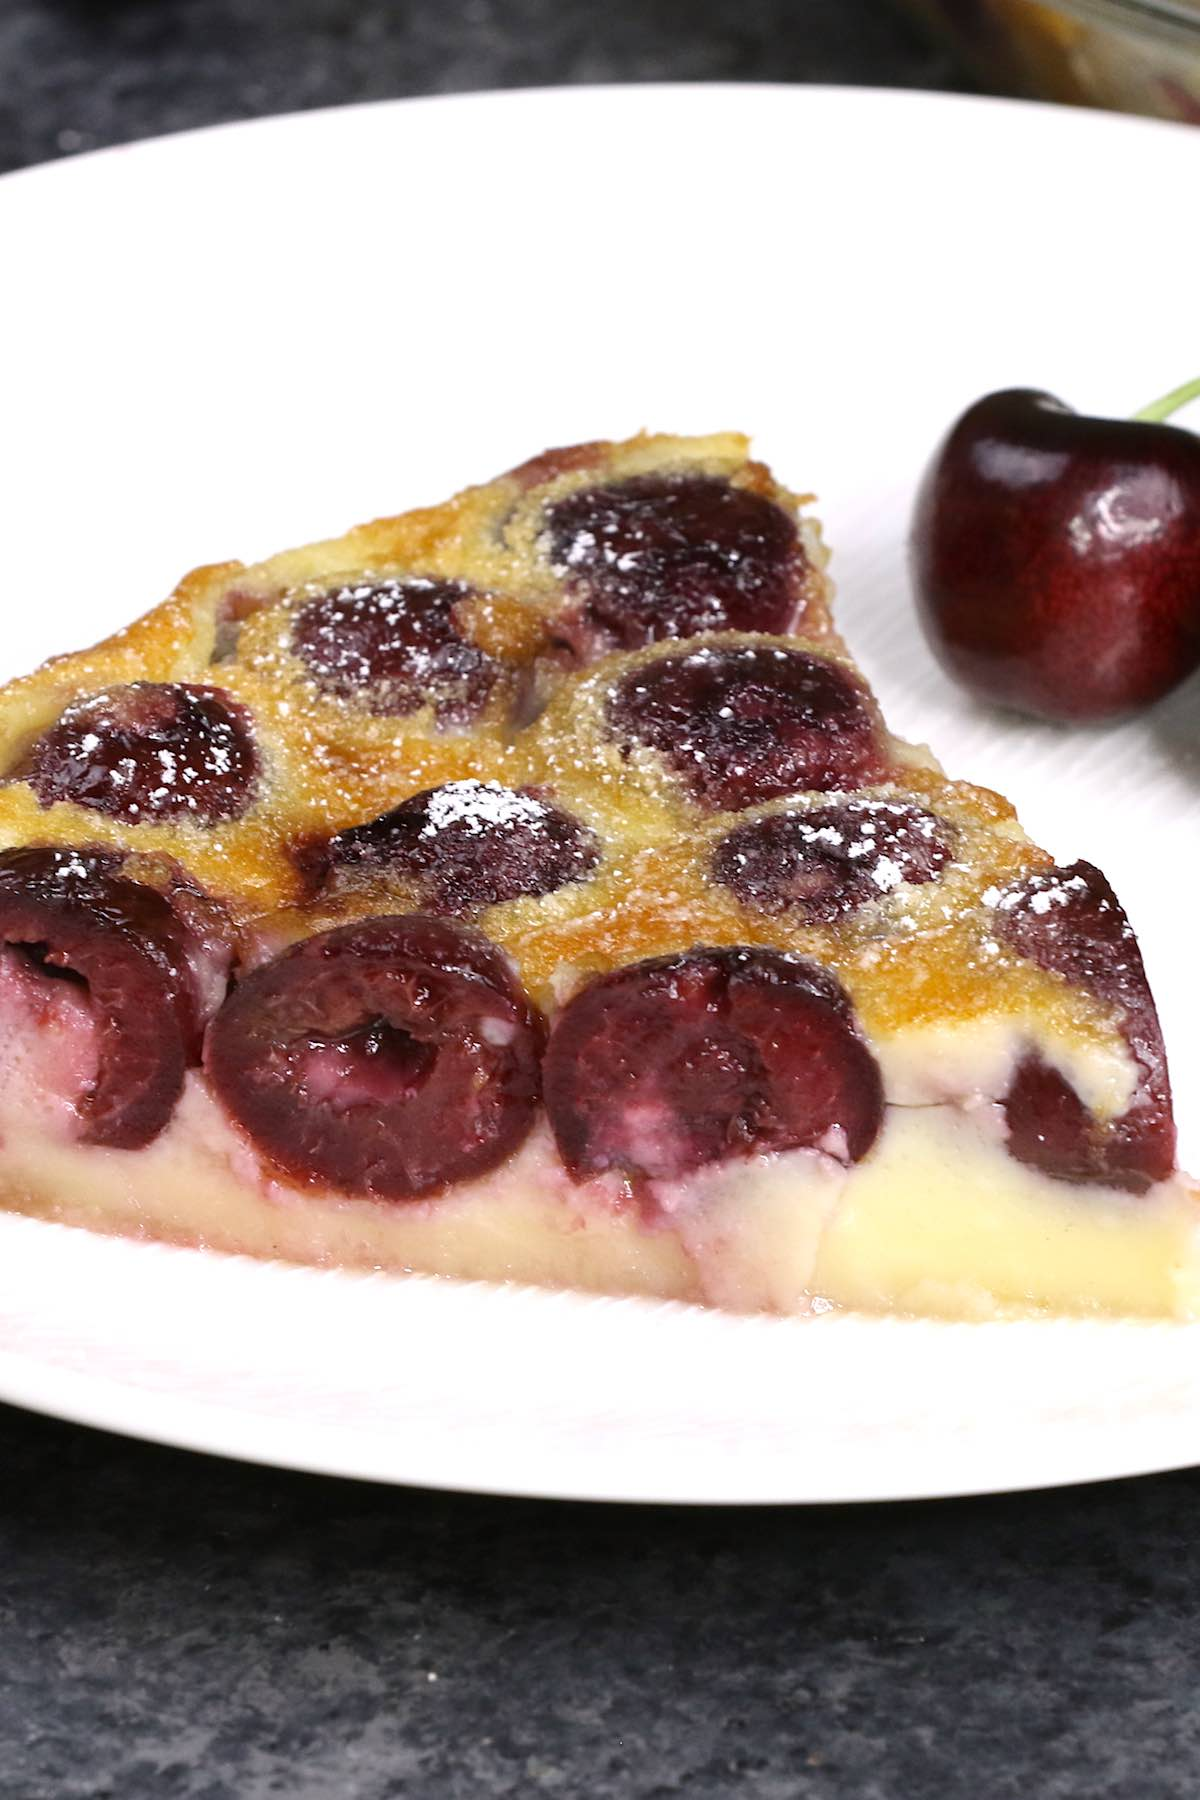 A wedge of clafoutis dusted with powdered sugar on a serving plate with a fresh cherry on the side